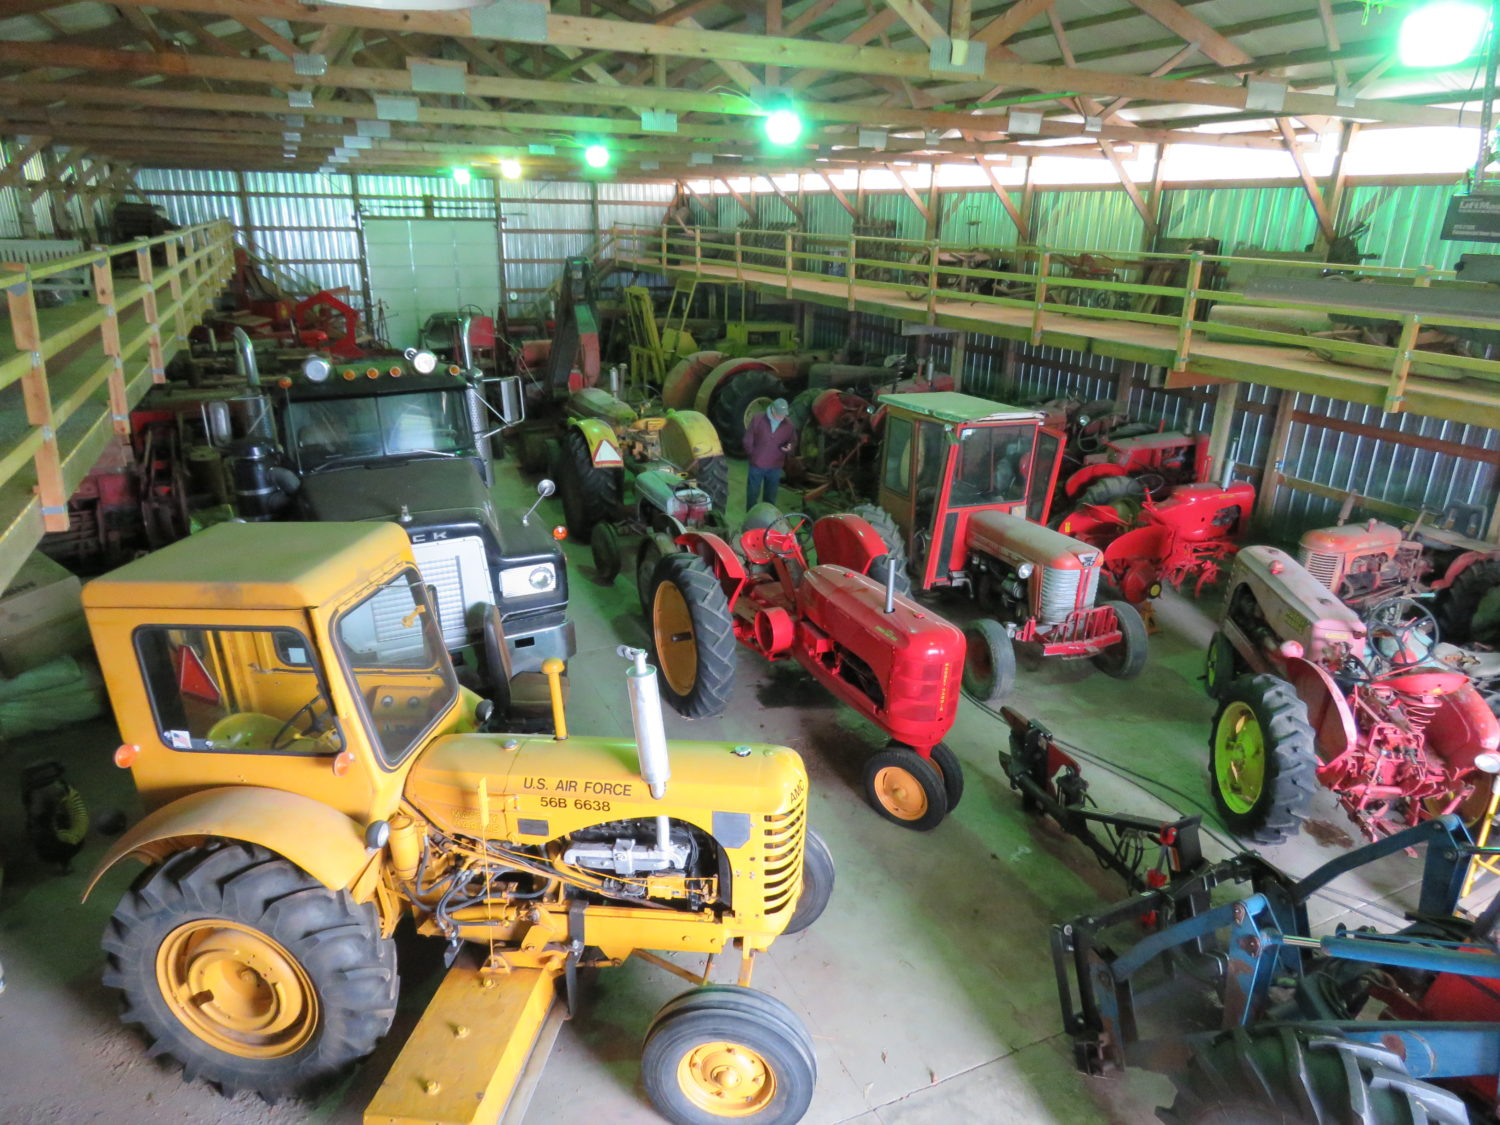 Day 1-Collector Cars, Vintage Motorcycles & Antique Tractors- The Meacham Estate - image 6